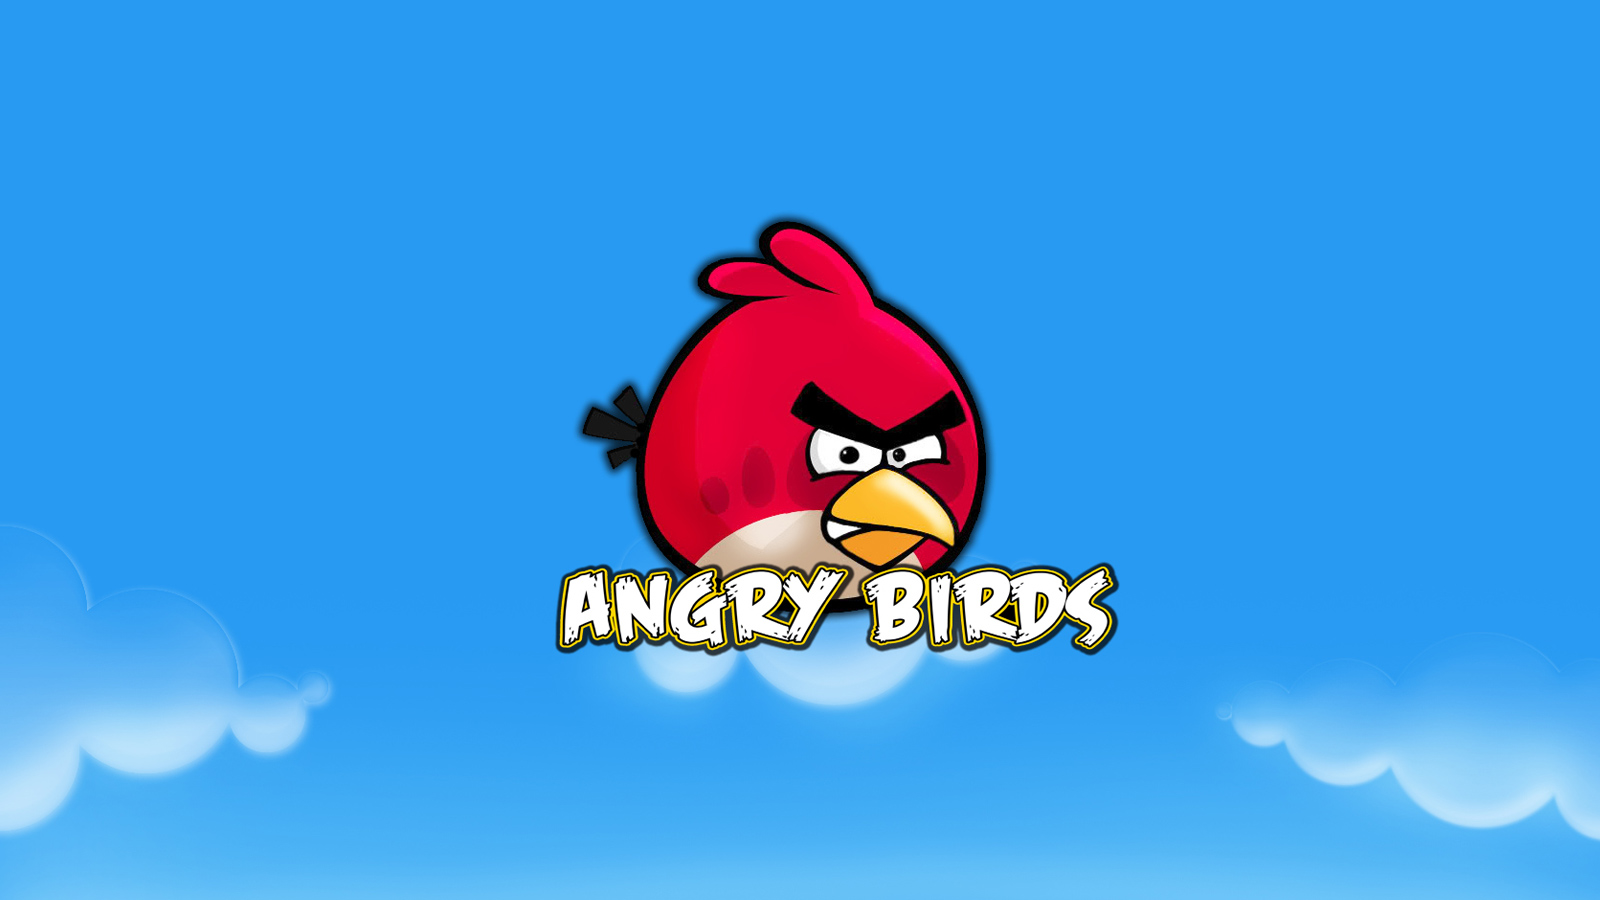 Angry Birds Wallpaper And Background Image